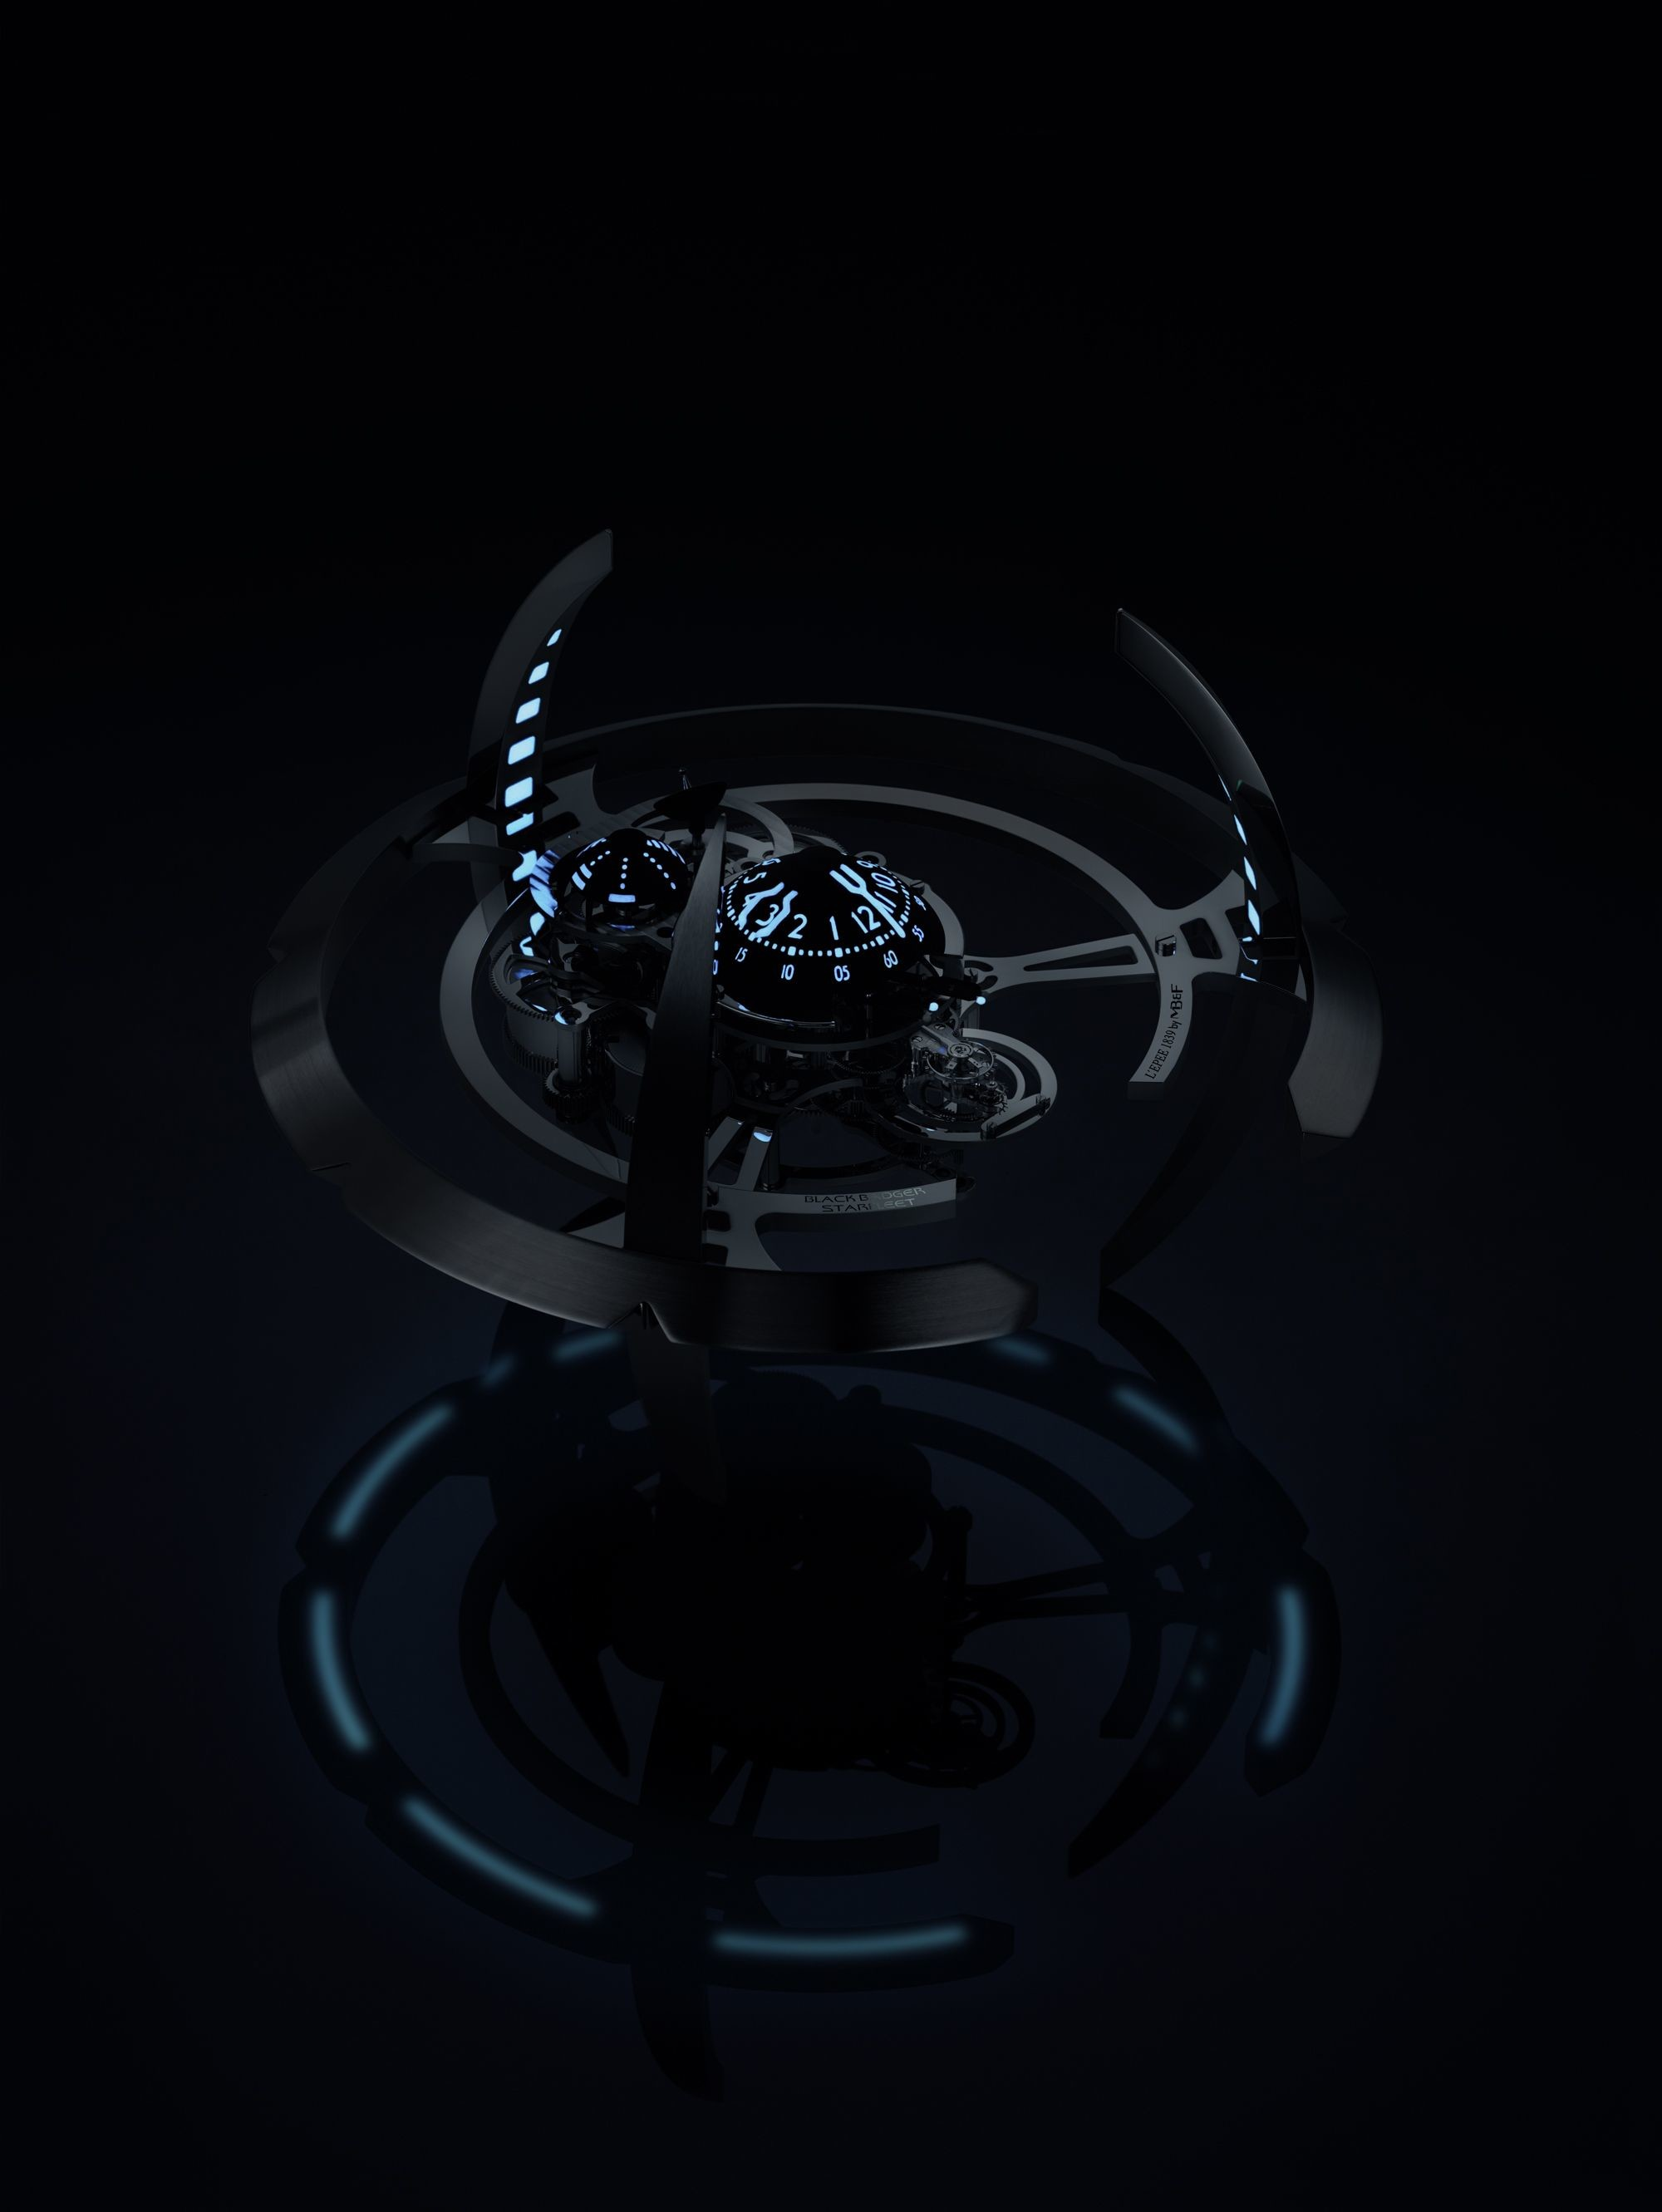 Res: 2000x2662, Starfleet Machine Black Badger by L'Epée 1839 + MB&F